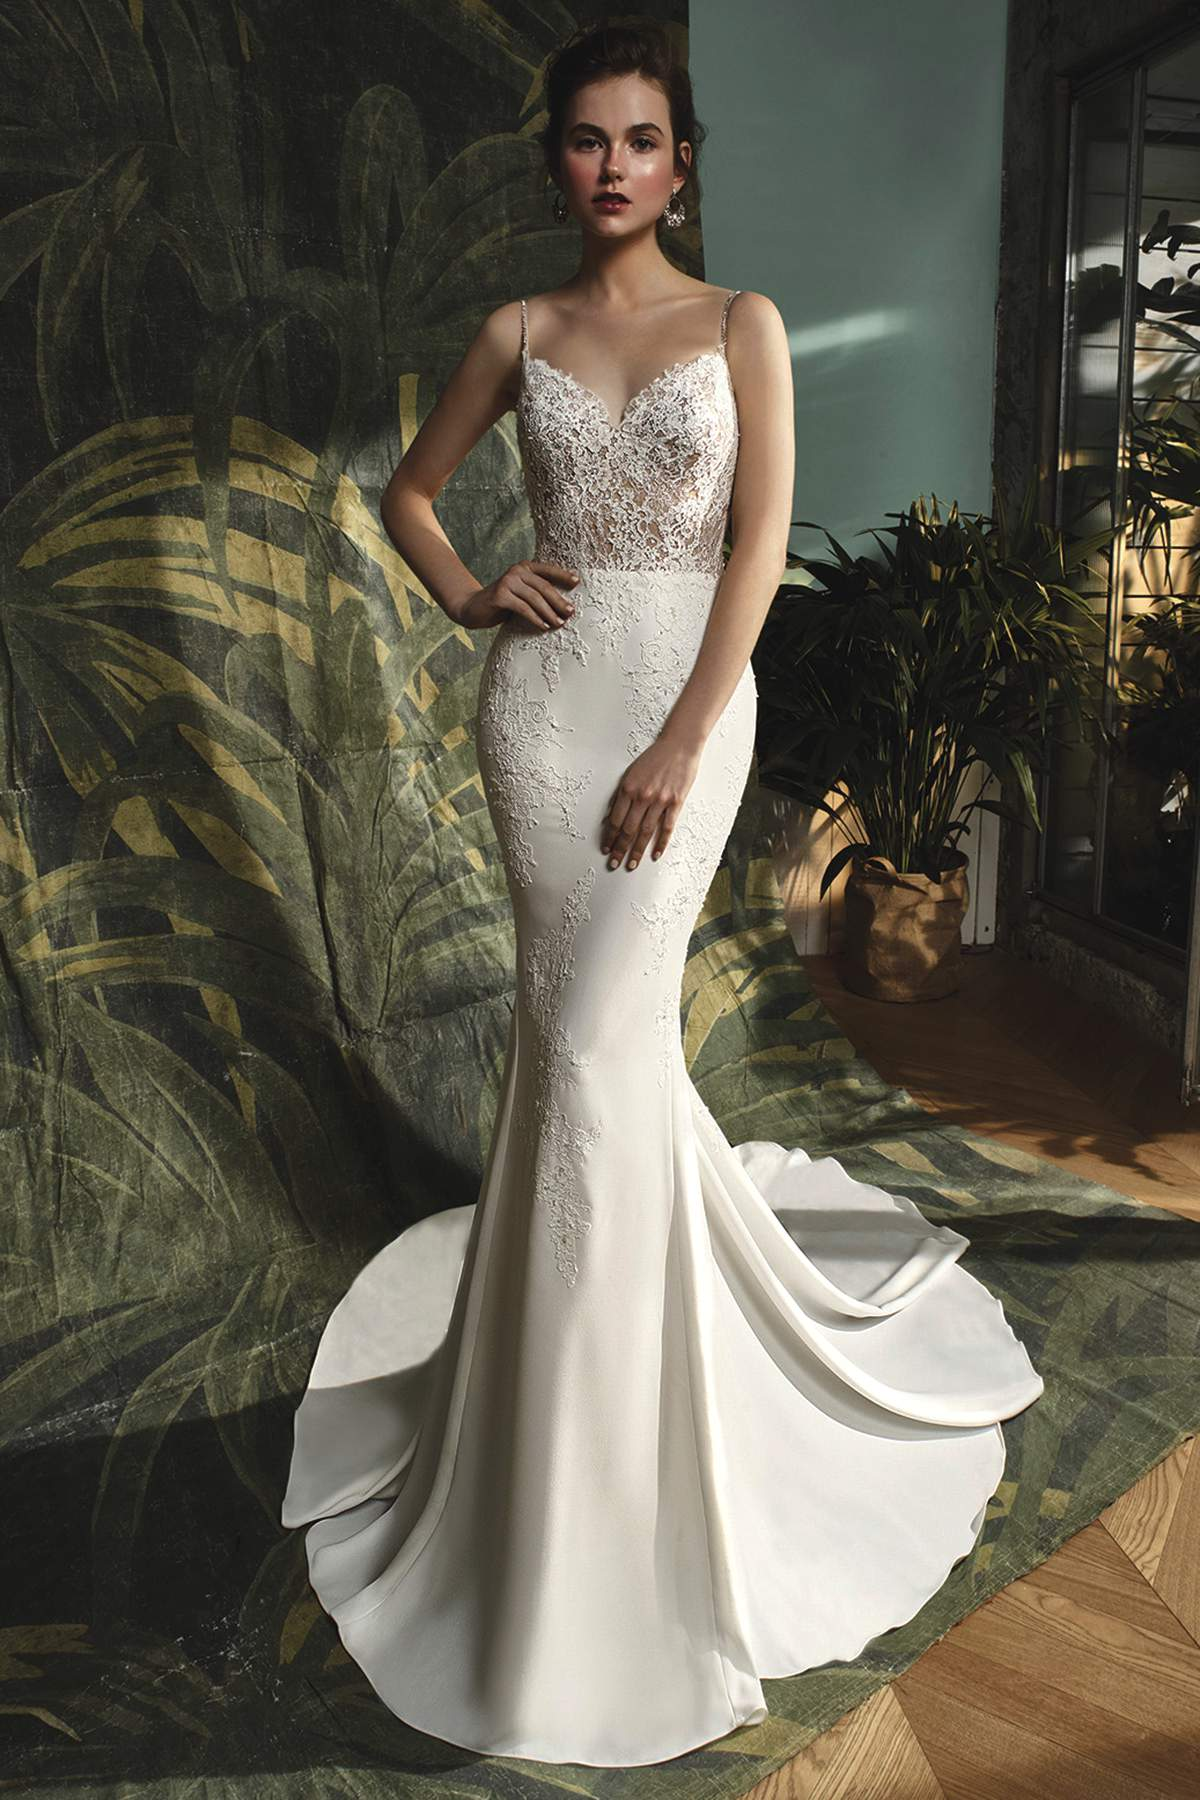 73c323cebec Karter by Blue by Enzoani - Find Your Dream Dress